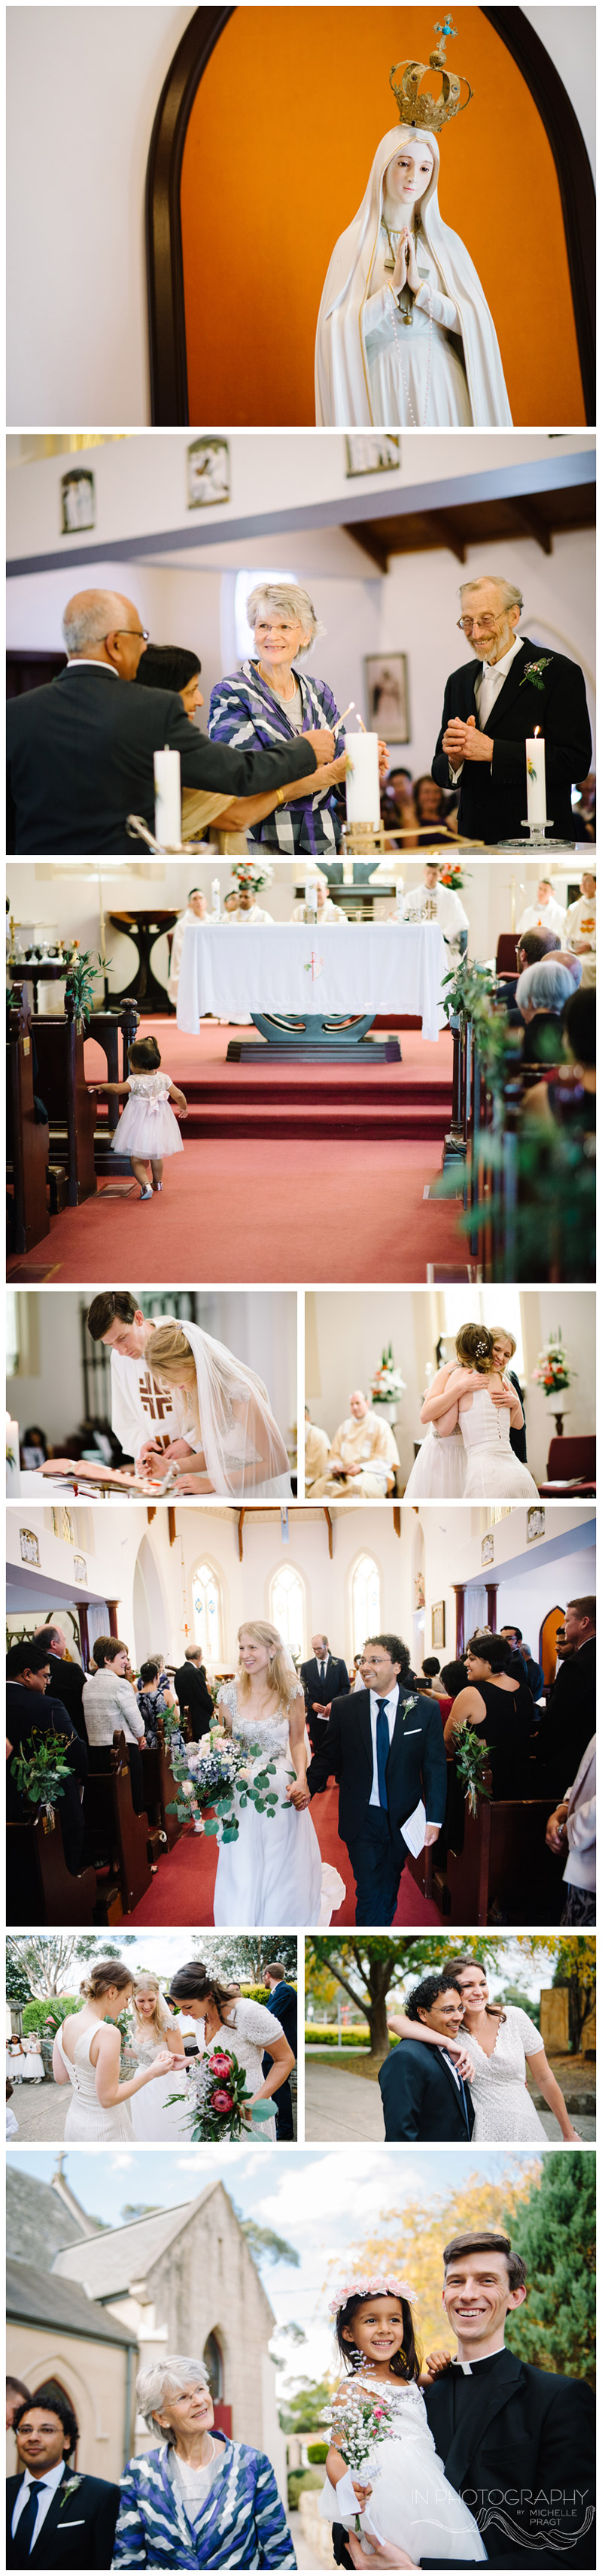 Healesville church wedding ceremony